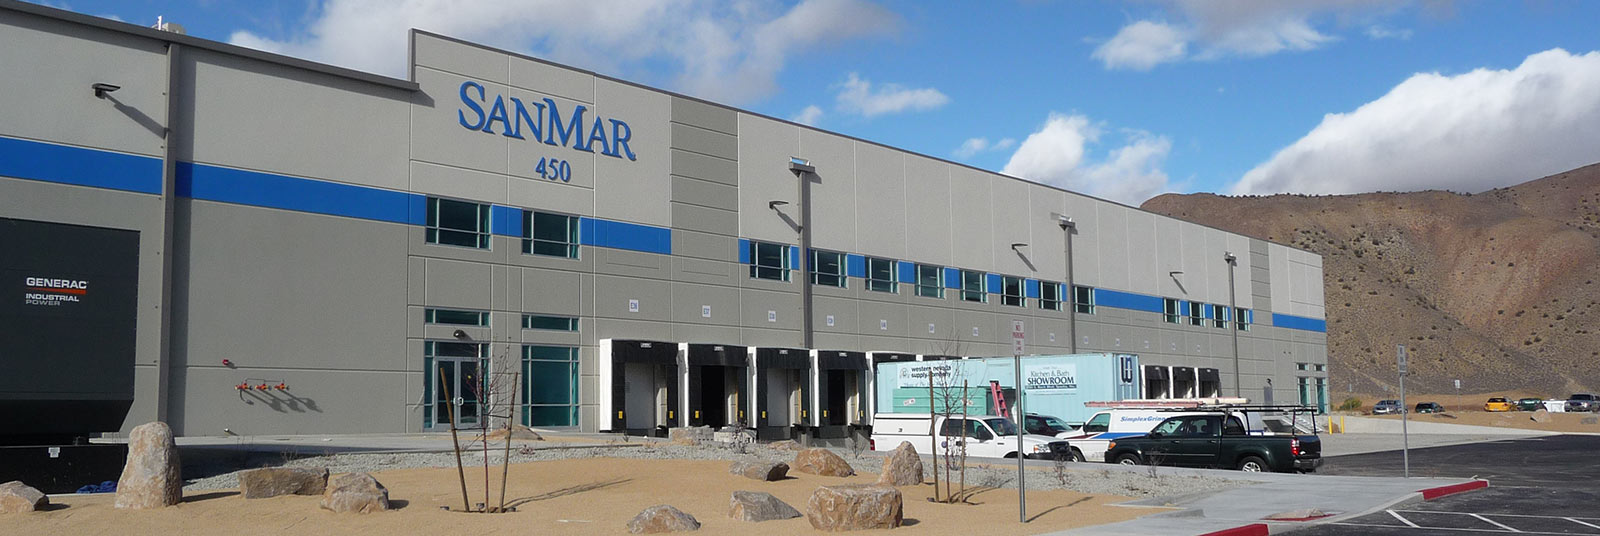 The entrance to the large SanMar distribution center in Spanish Springs, Nevada.